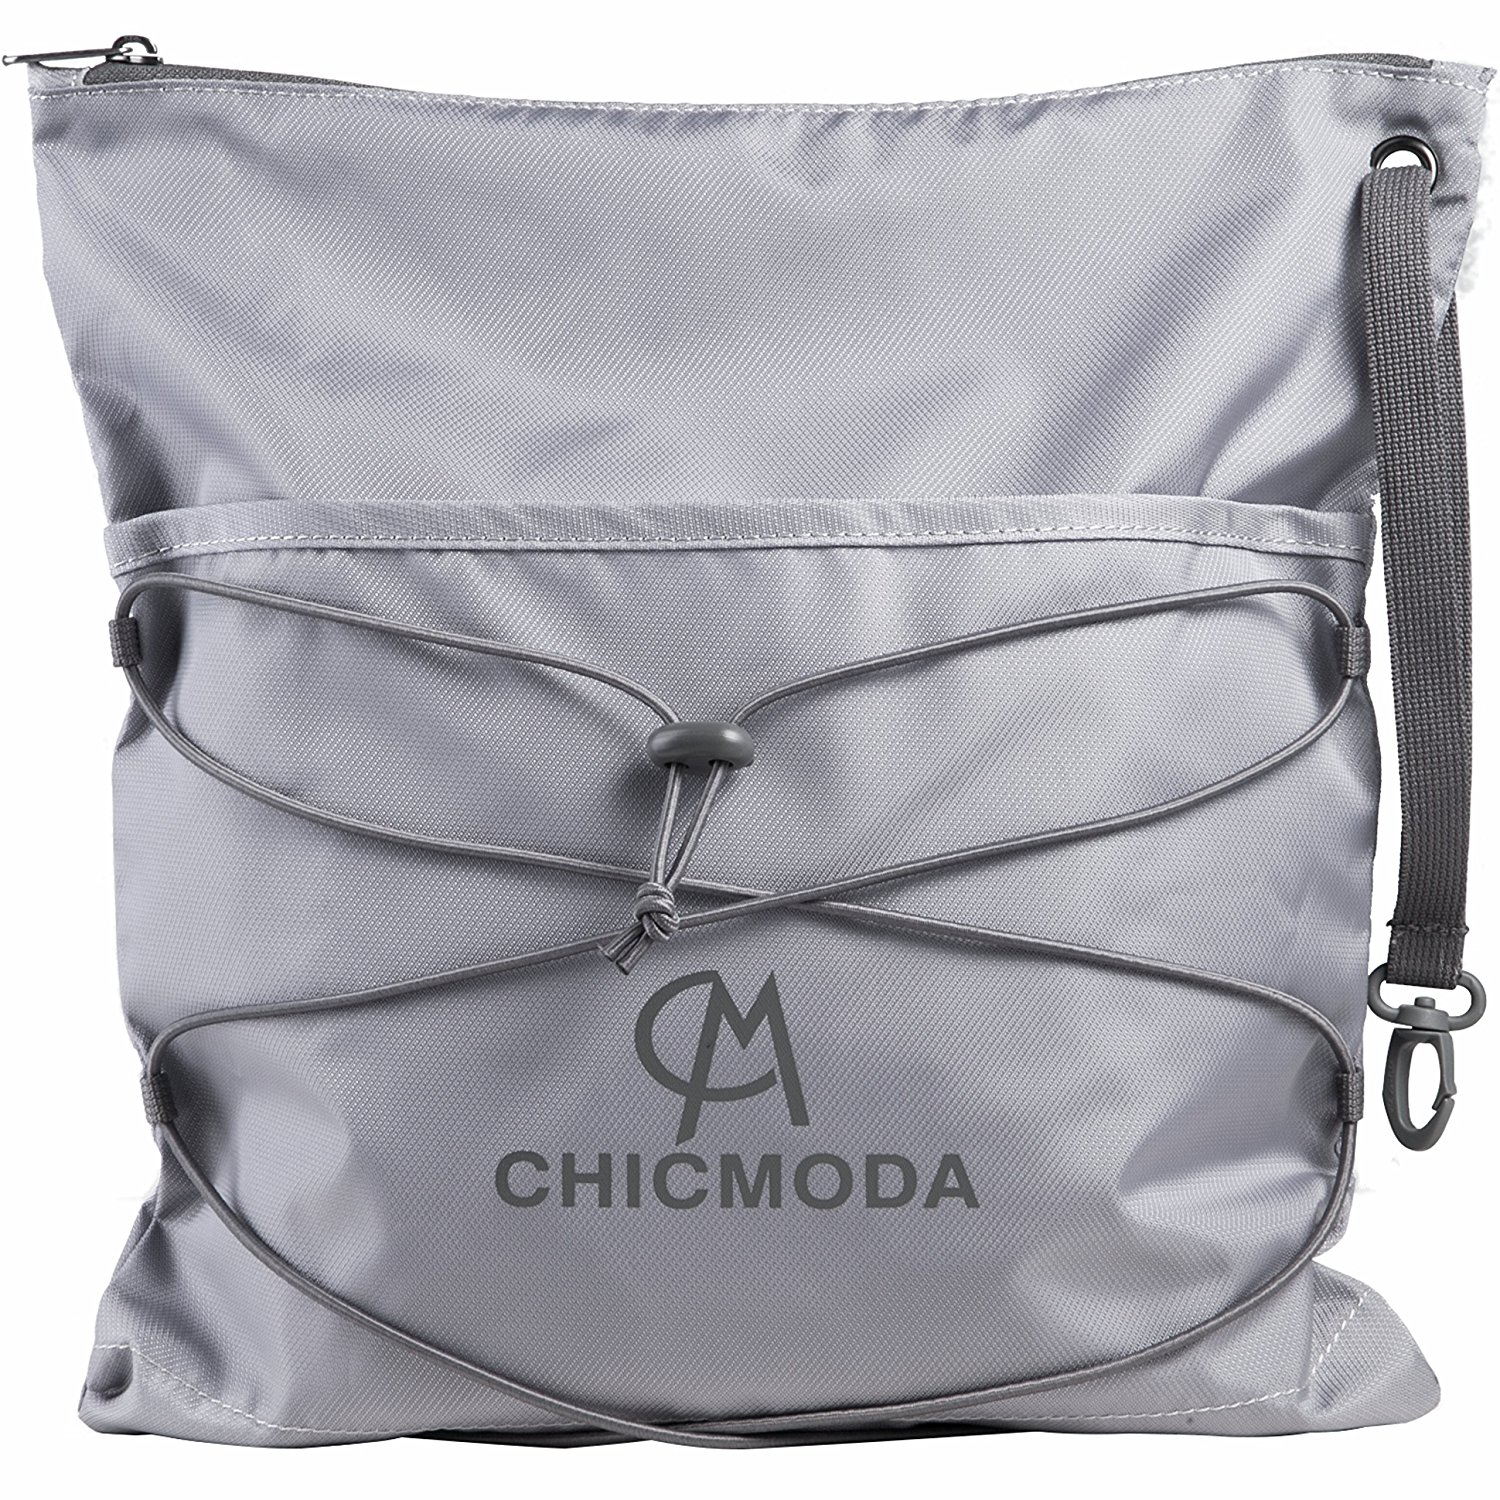 Chicmoda Portable Waterproof Travel Sports Shoe Bag